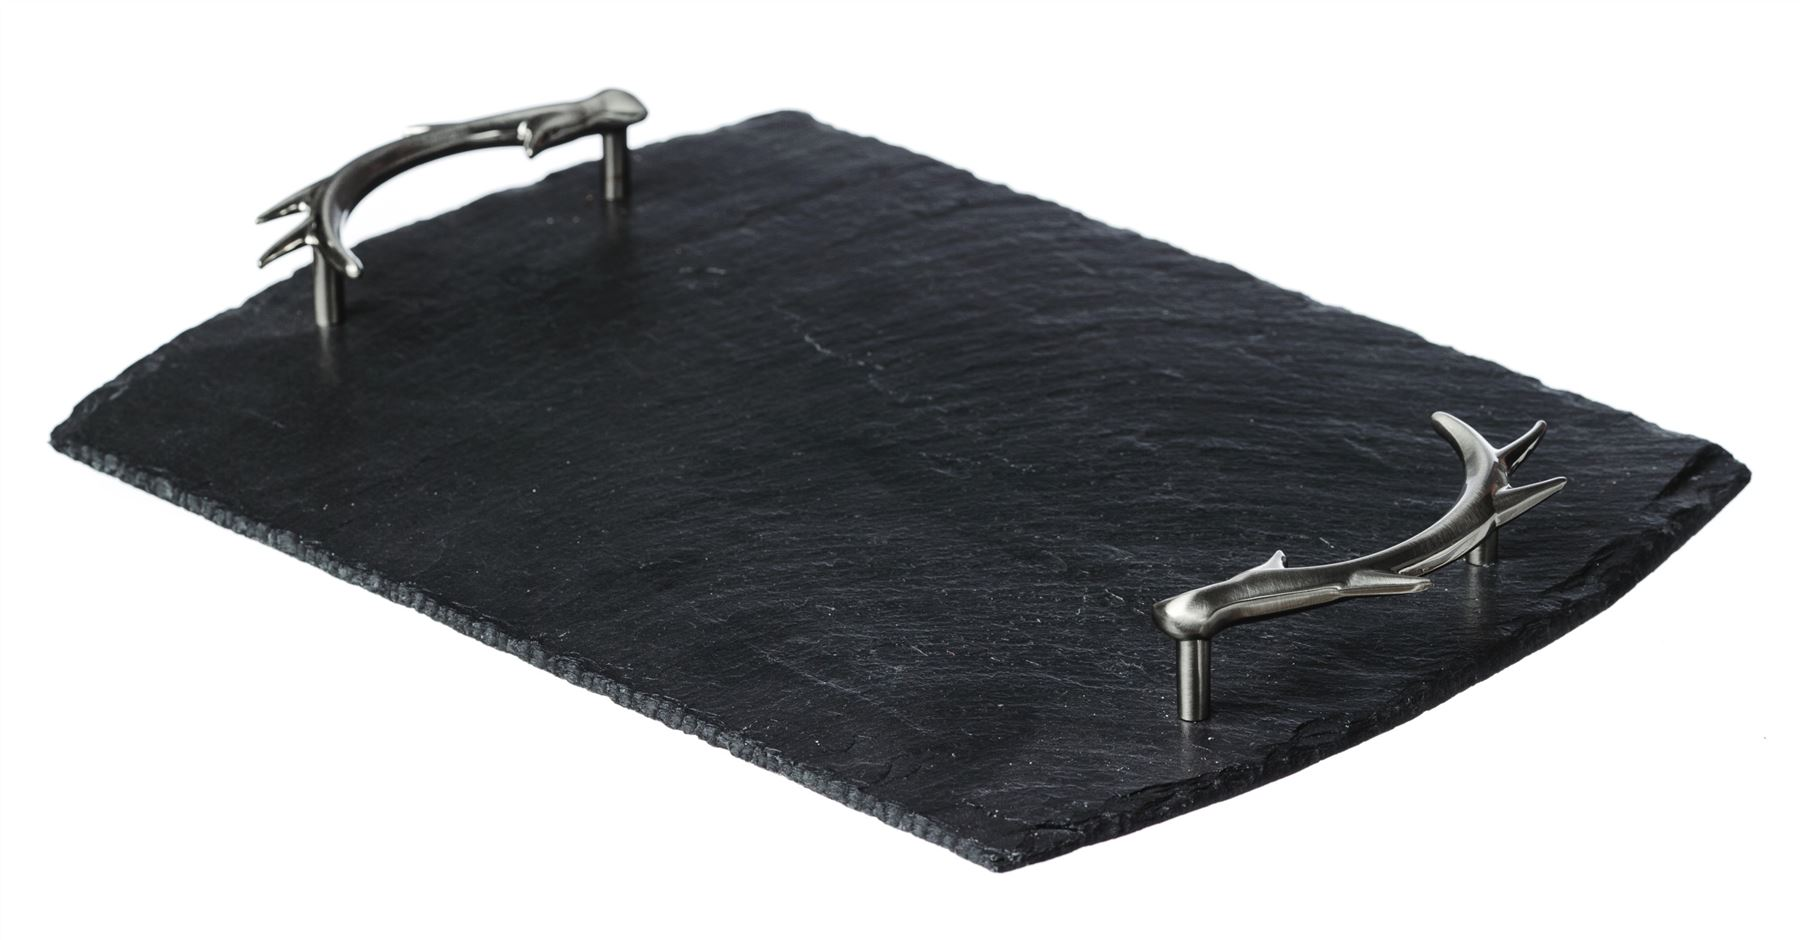 Just Slate Cheese Board Serving Trays with Antler Detail Handles ...